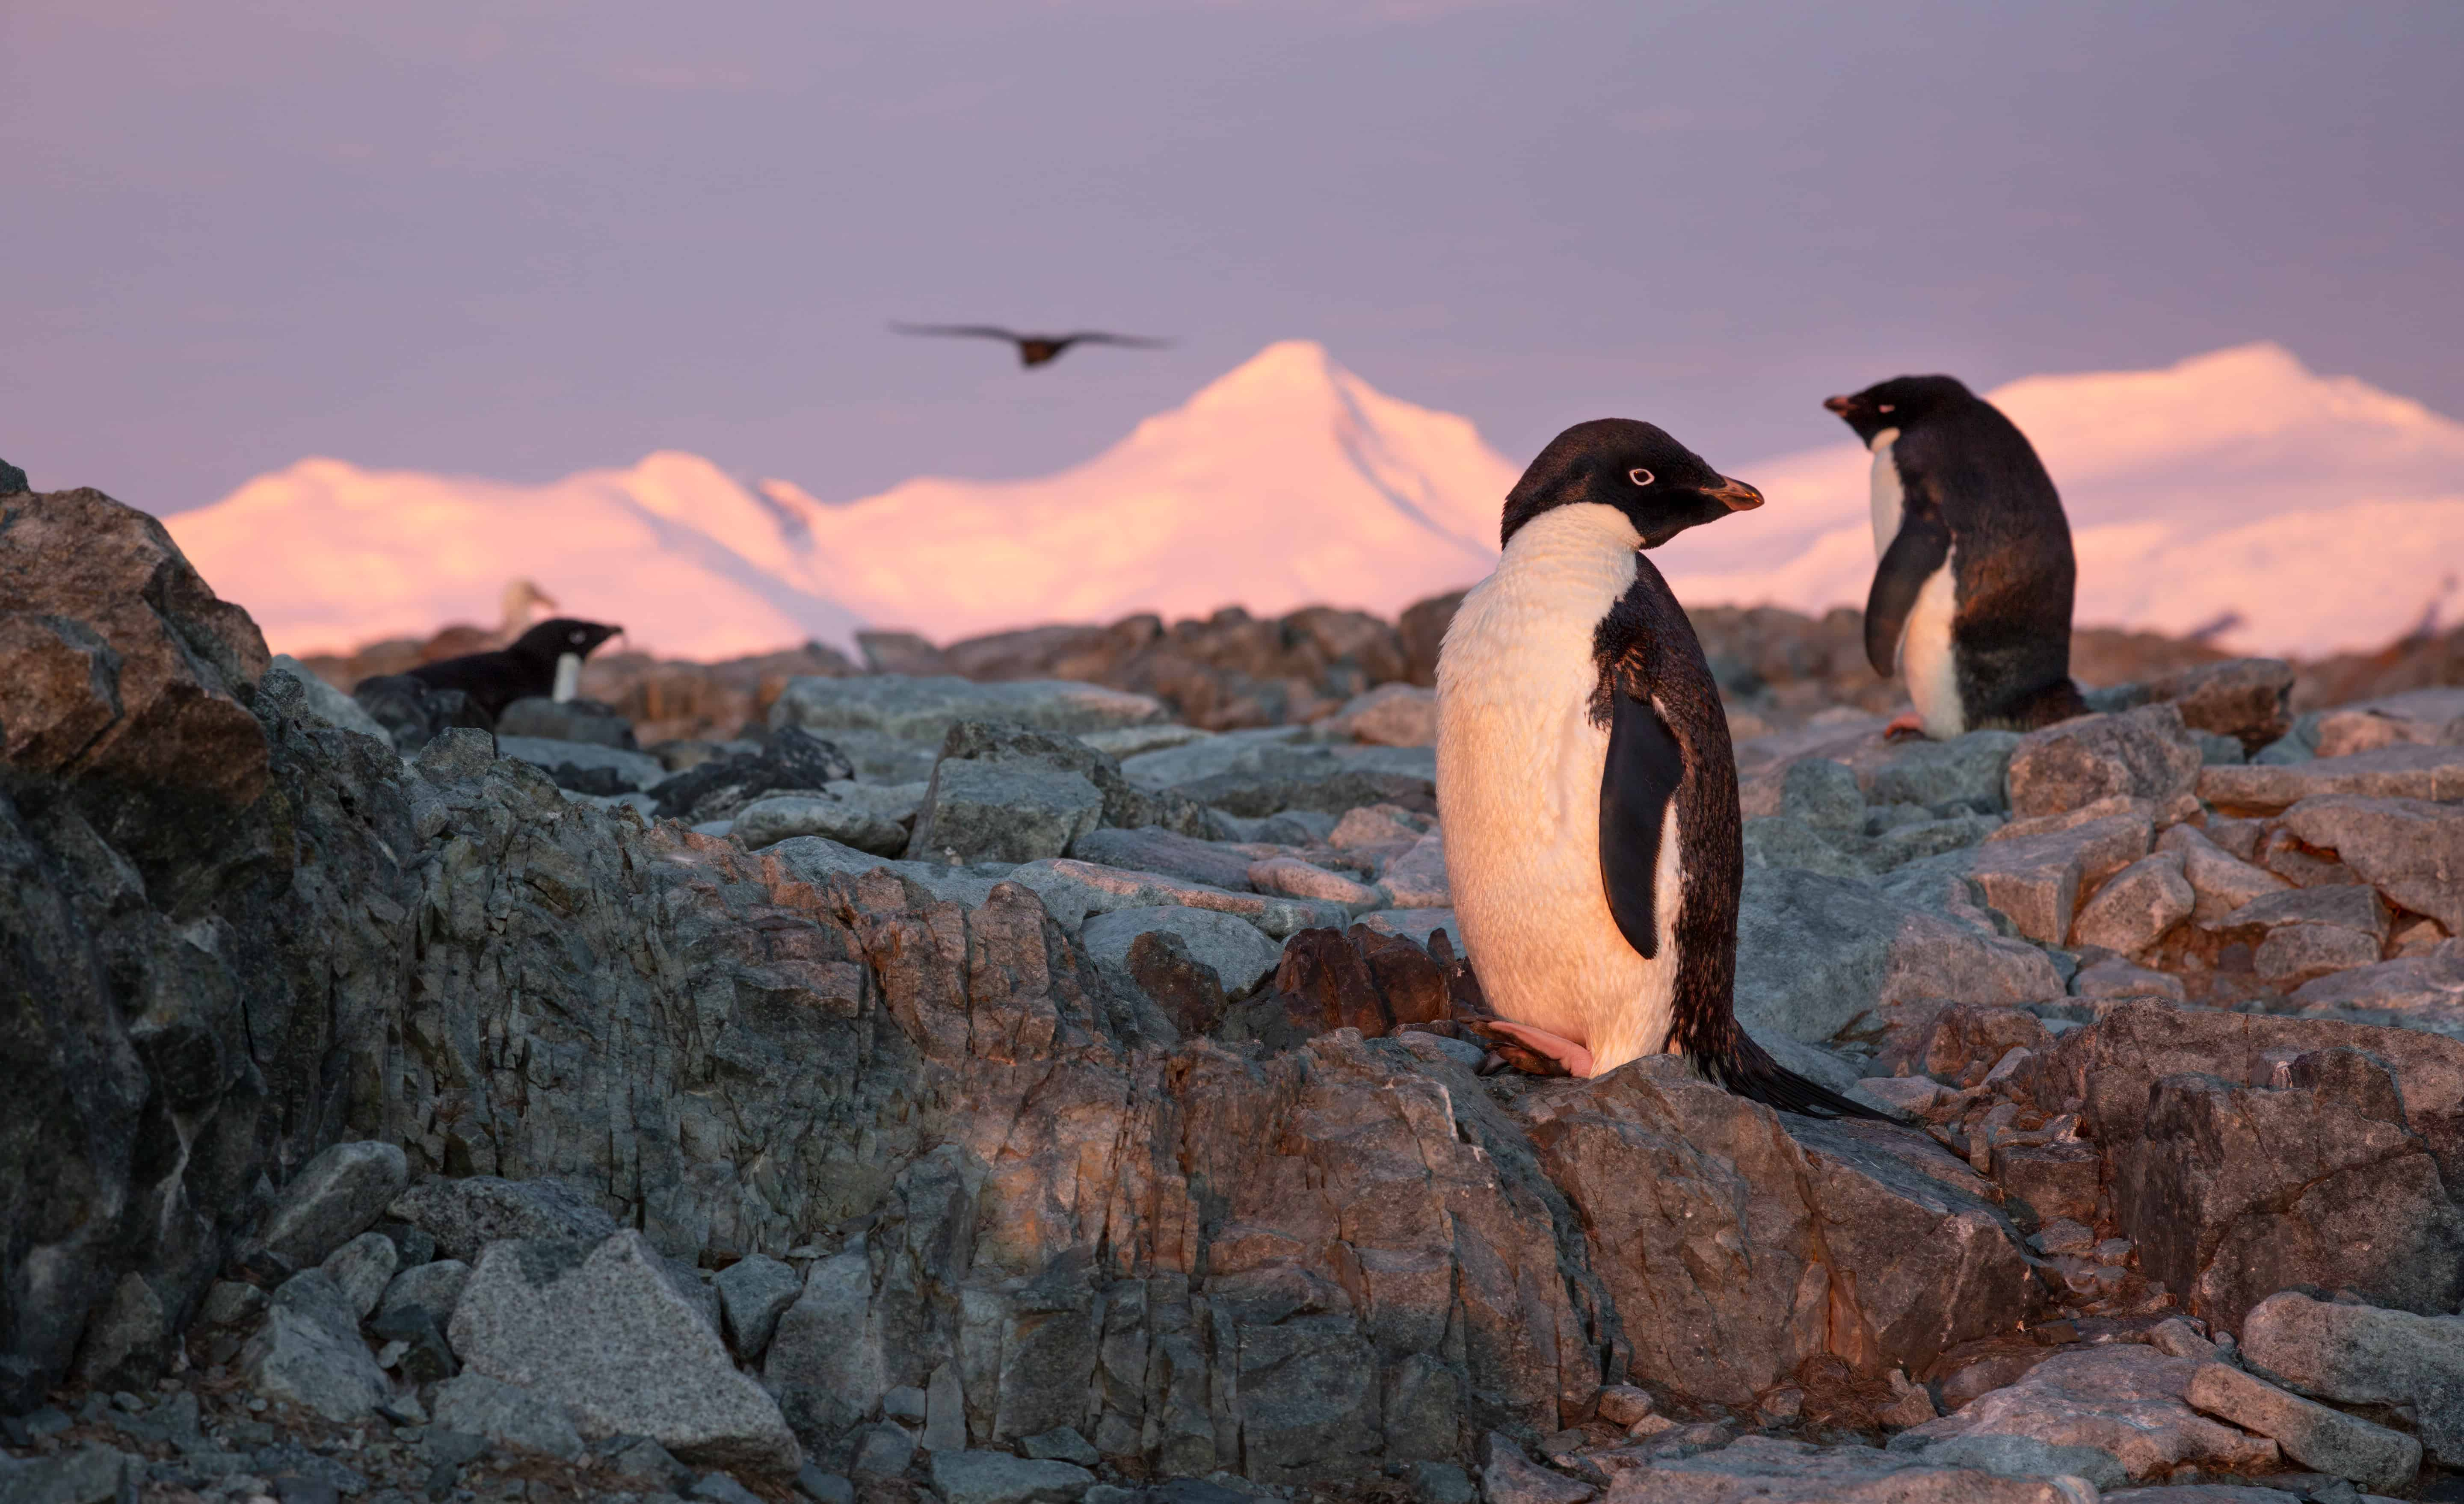 Penguins sitting on rock in Antartica